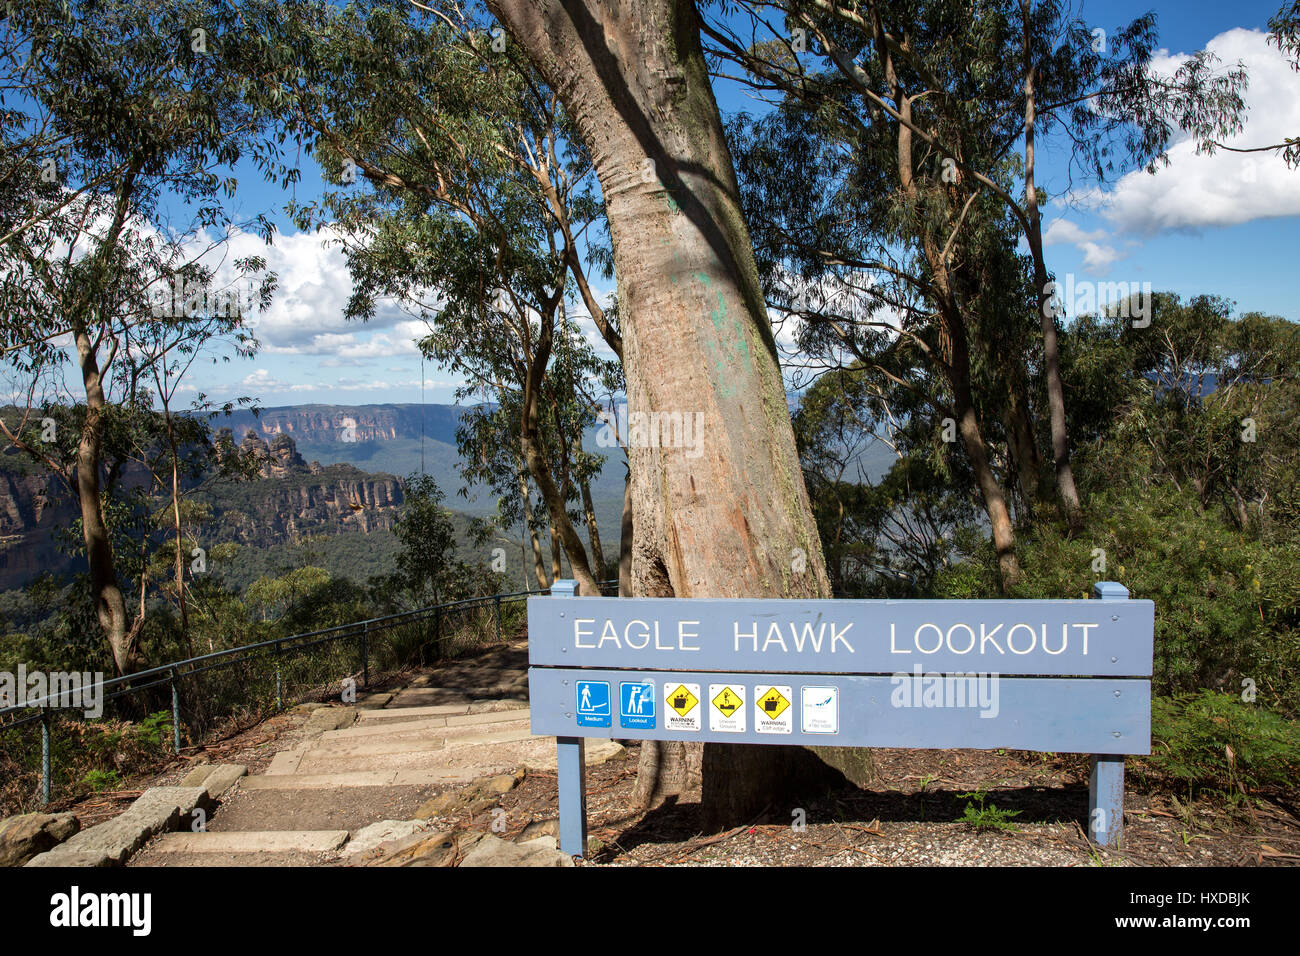 Eagle Hawk Lookout in Blue mountains national park, new south wales,Australia with three sisters in the background - Stock Image